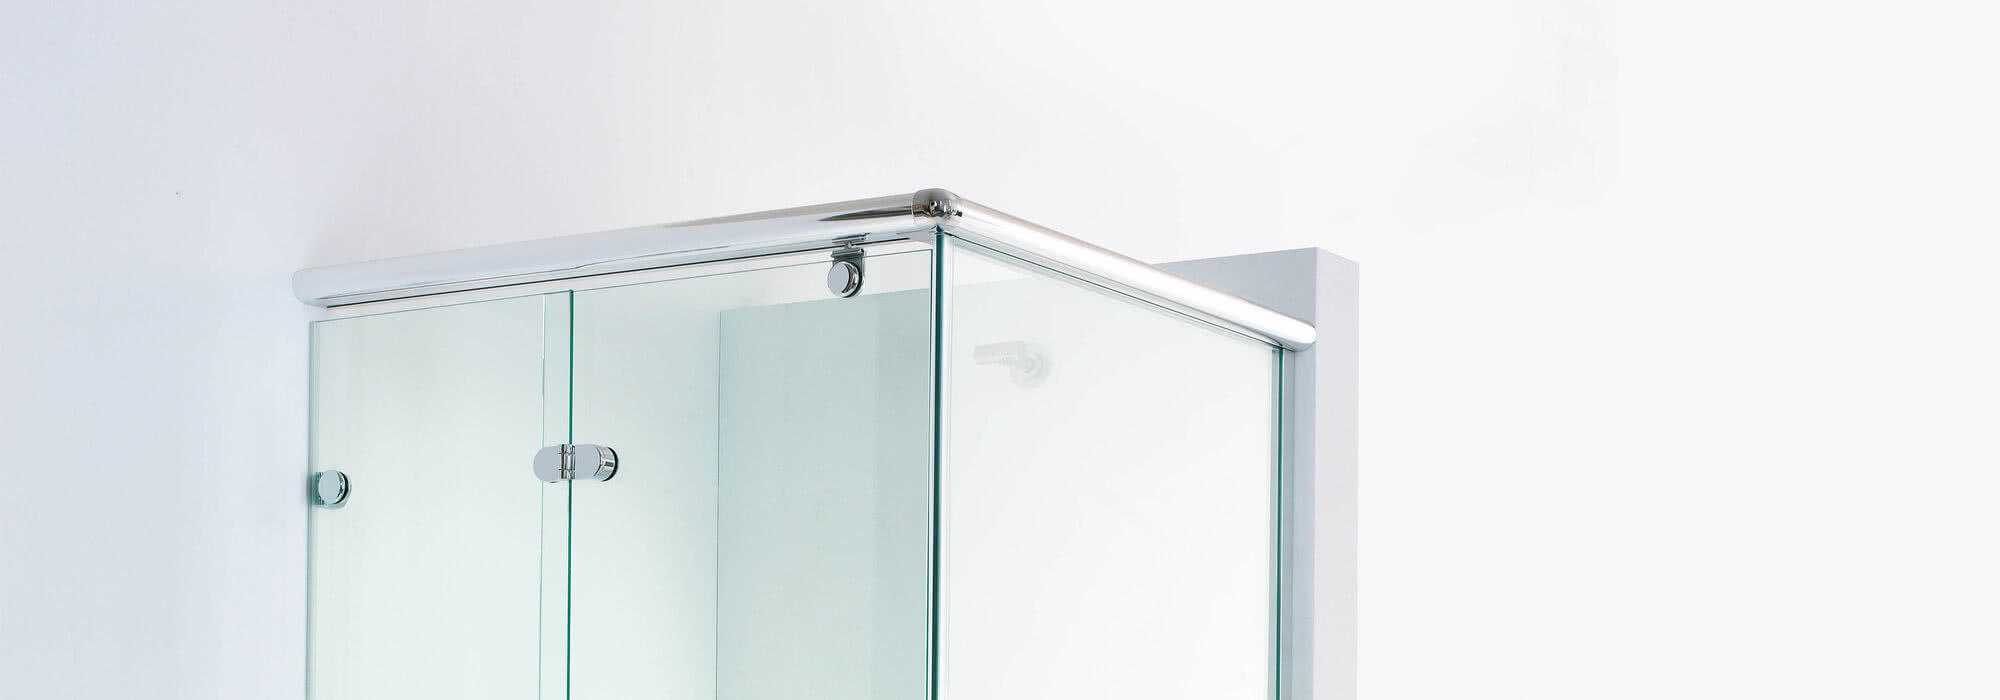 Onyx shower, hinge in detail view